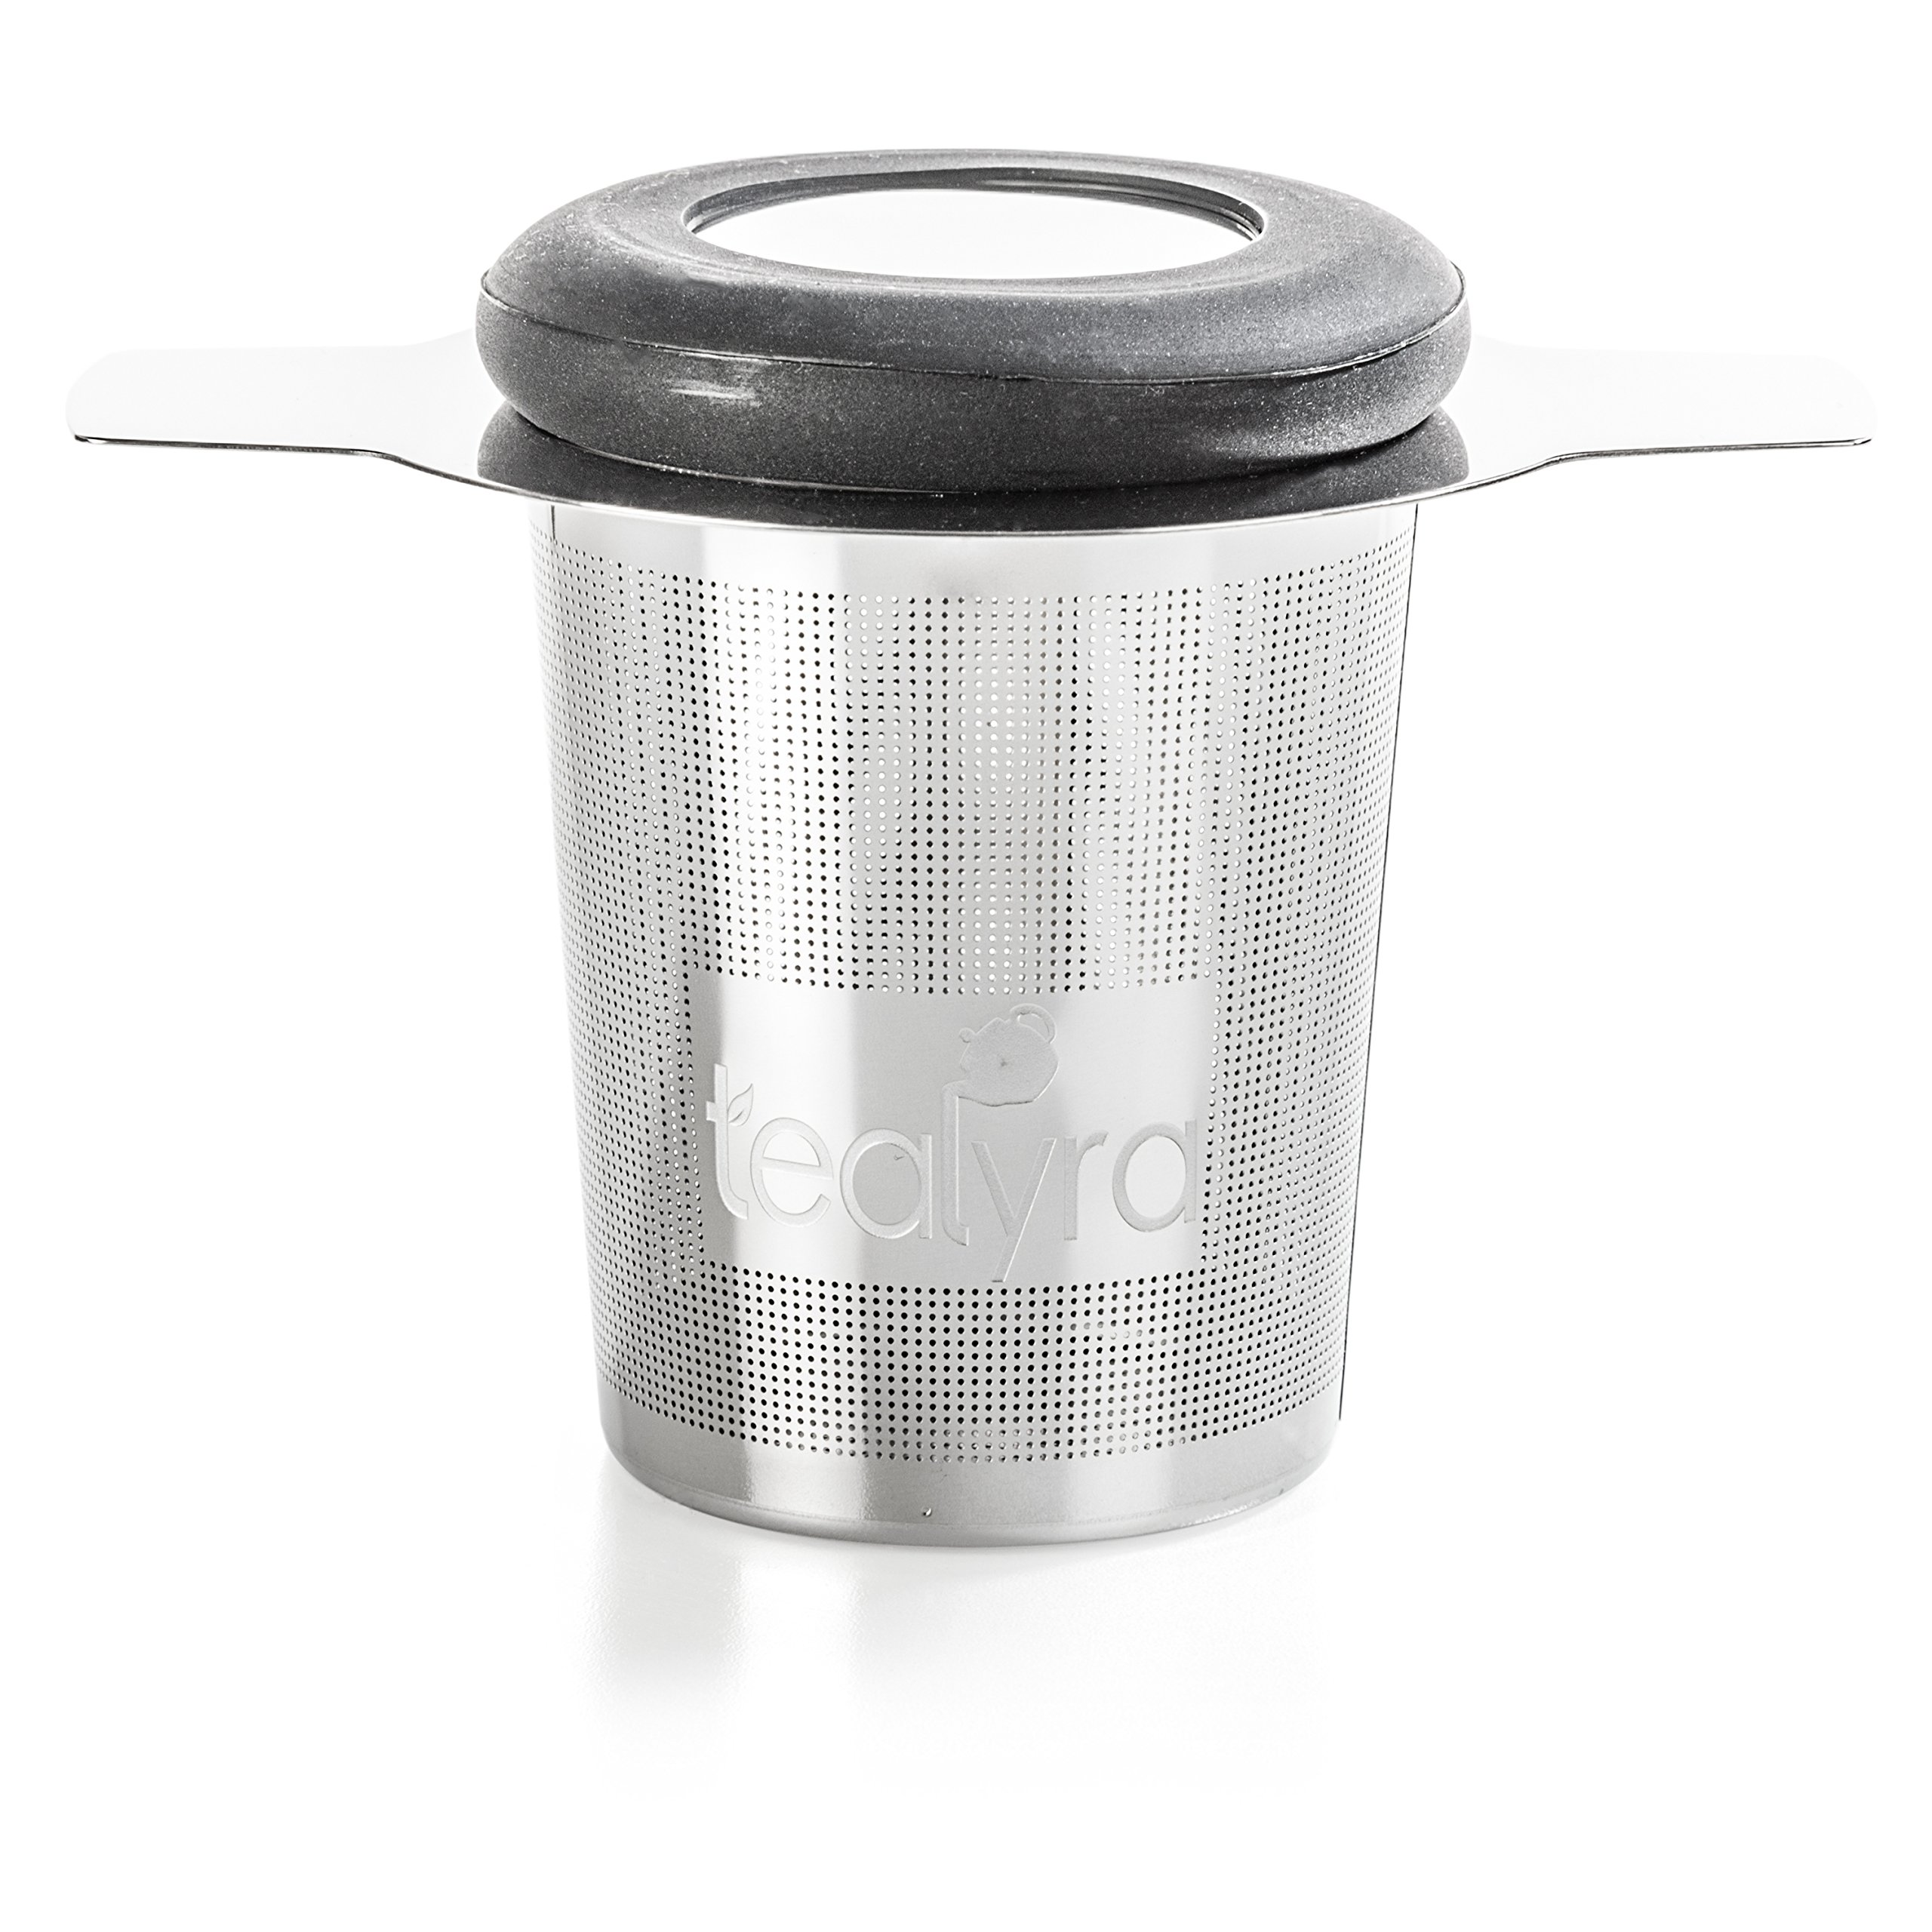 Tealyra - brewiTEA - Brew-In-Mug Tea Infuser Mesh Strainer with Metal Dish - Large Capacity and Perfect Size for Hanging on Teapots - Mugs - Cups - To Steep Loose Leaf Tea and Coffee by Tealyra (Image #1)